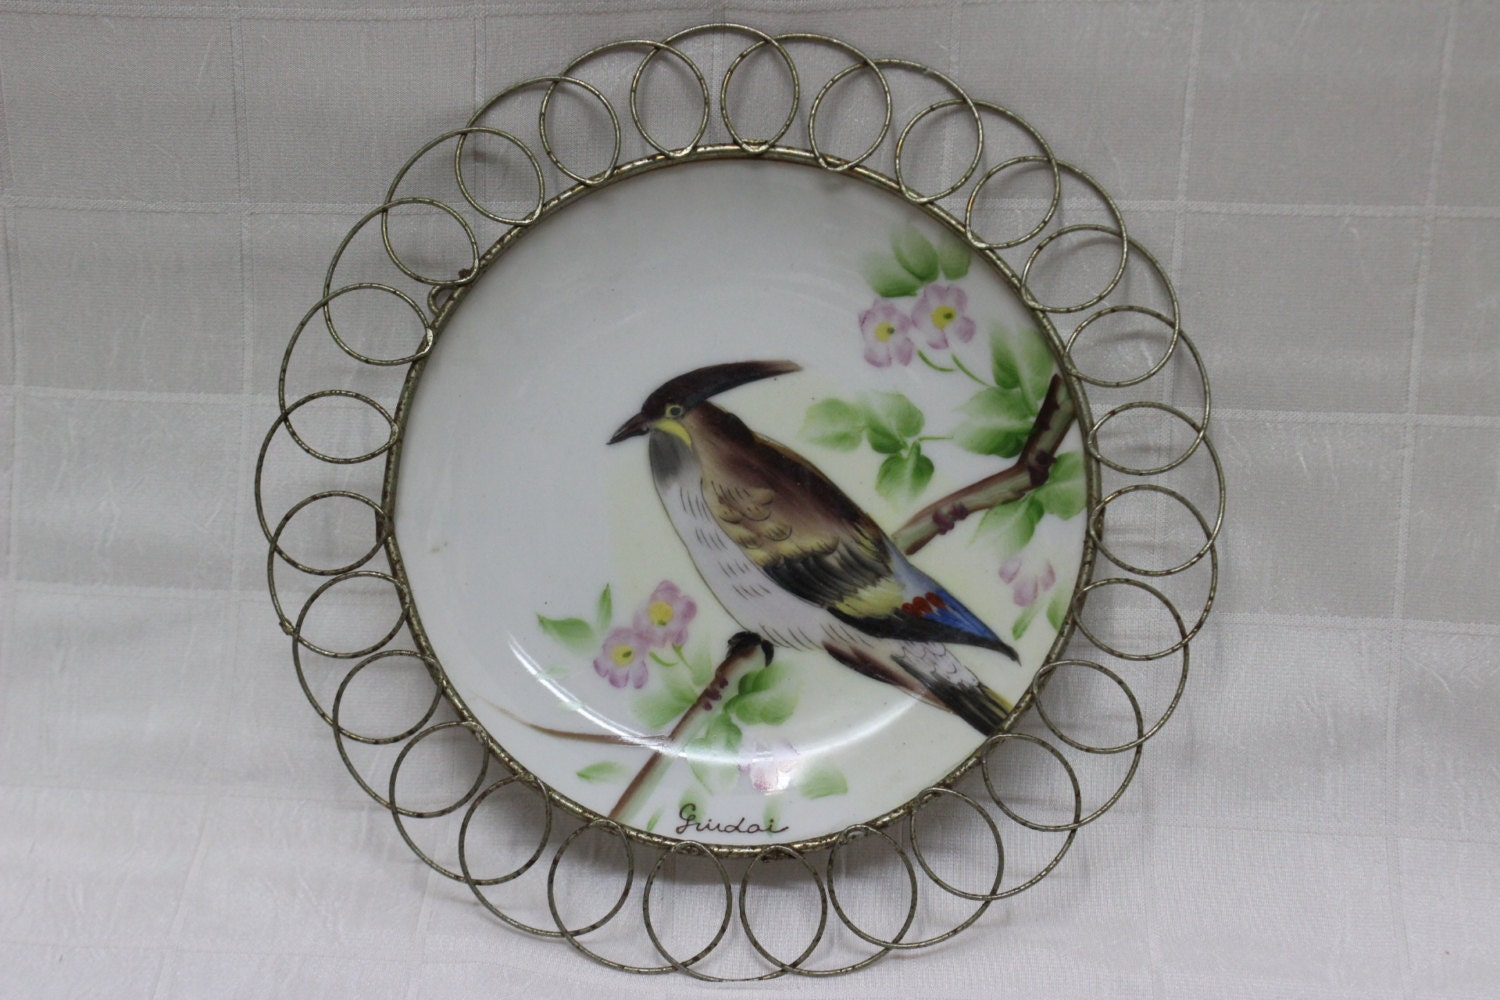 Decorative Wall Plates For Hanging: Decorative Wall Hanging Plate Hand Painted In Japan